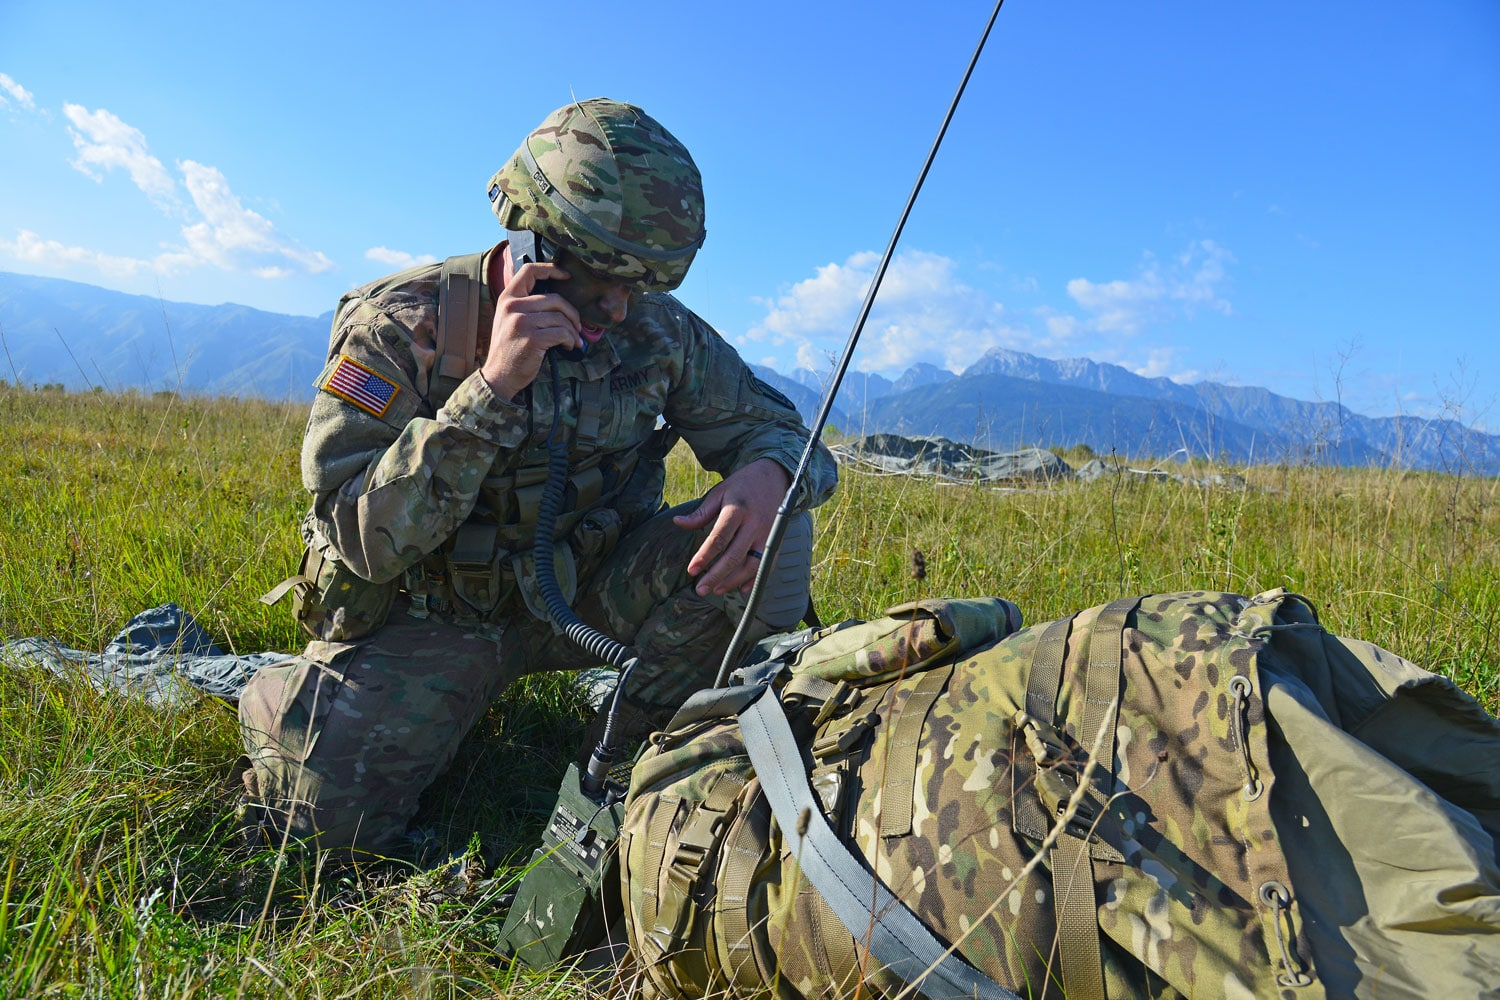 A United States Army Paratrooper assigned to the 173rd Brigade Support Battalion, 173rd Airborne Brigade, conducts a radio check during an airborne operation onto Frida Drop Zone in Pordenone, Italy.